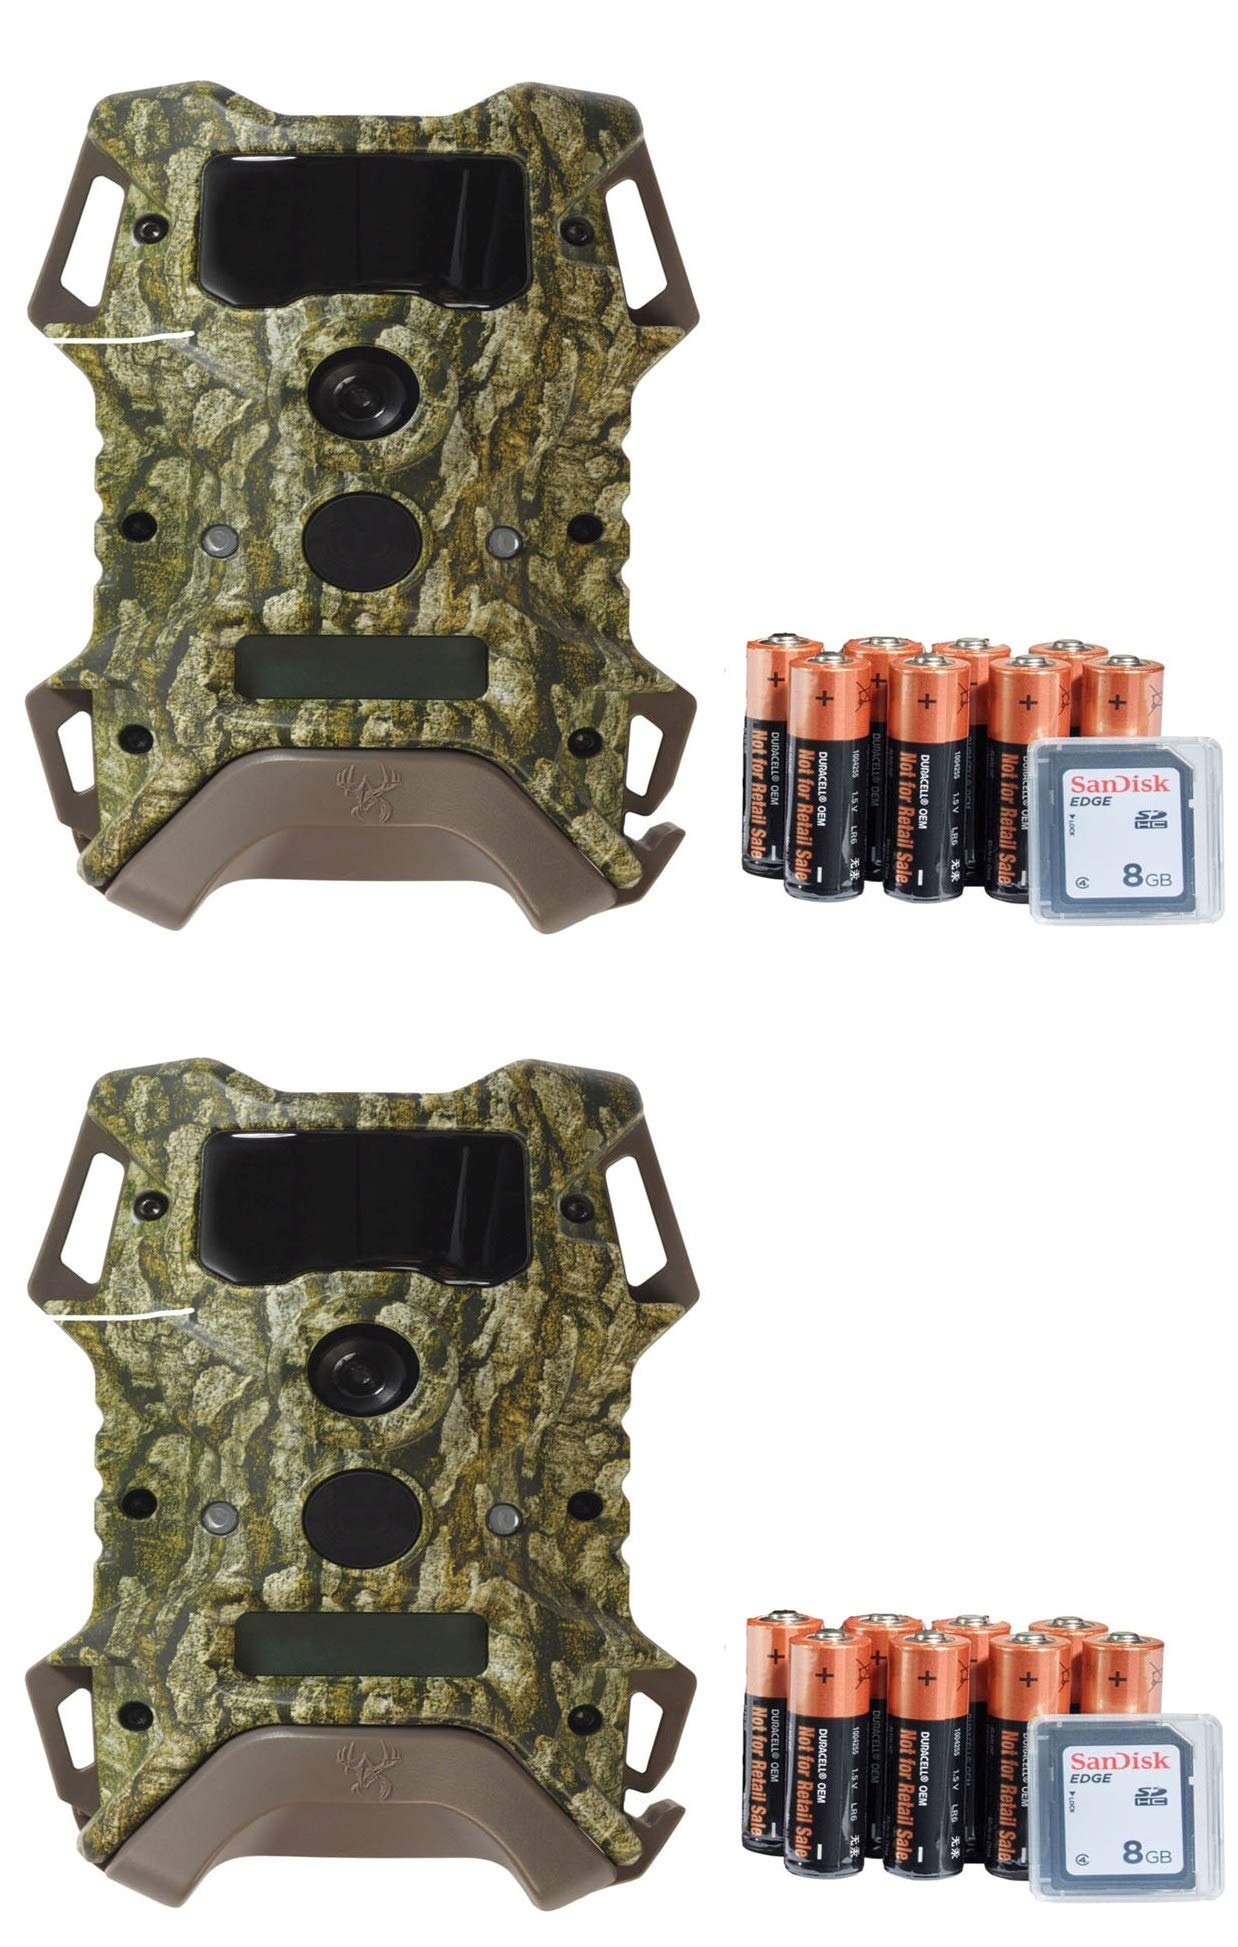 Wildgame Innovations Lightsout Scouting Batteries